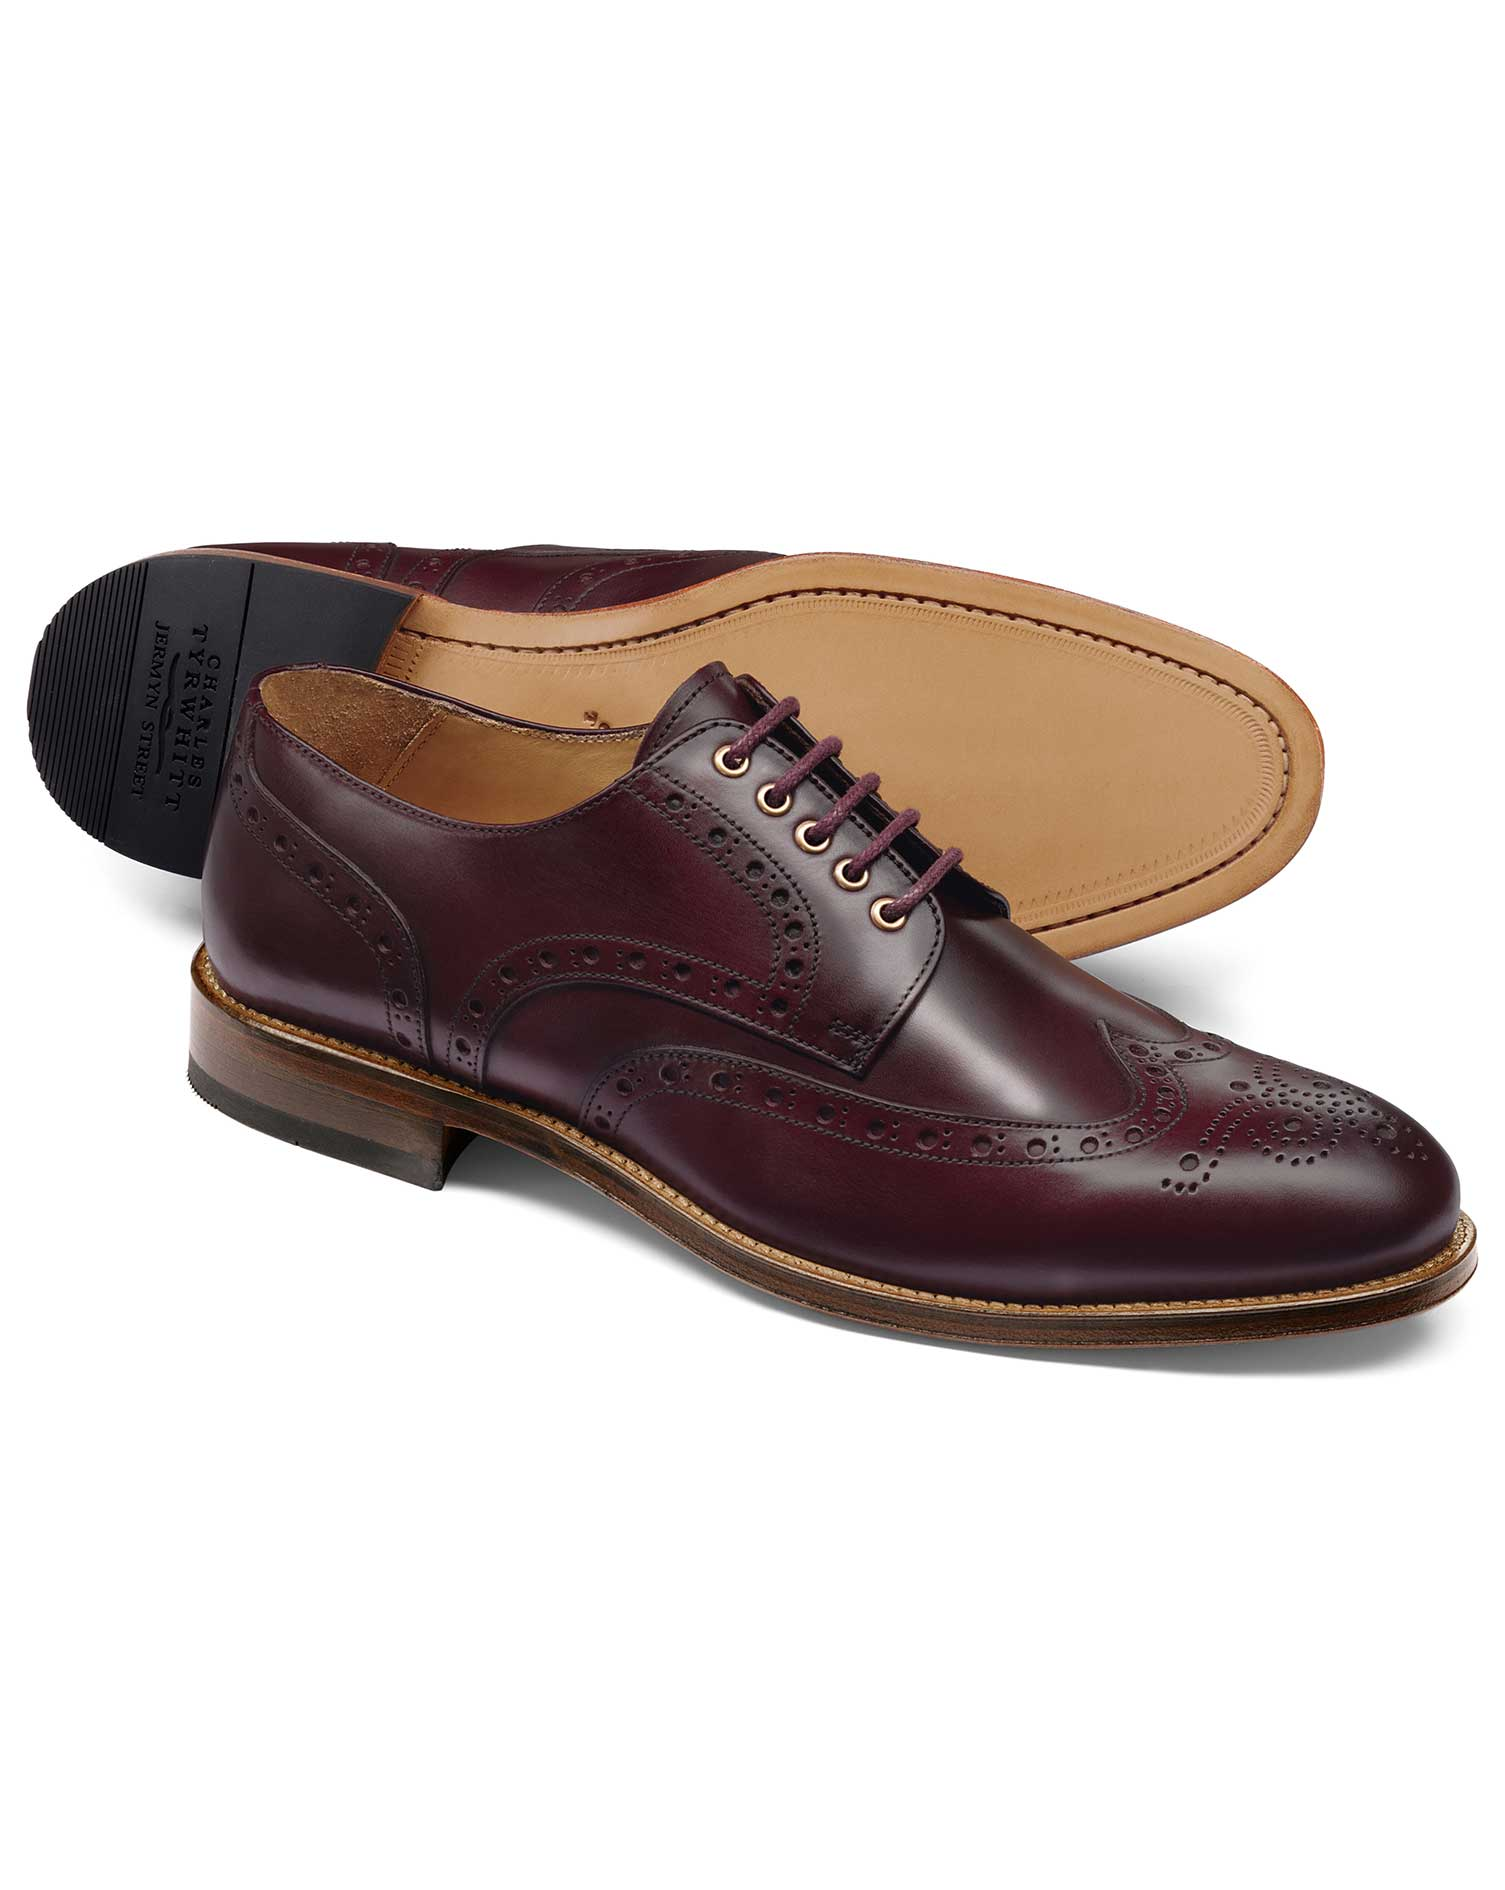 Oxblood Eyelet Derby Brogue Shoe Size 8 R by Charles Tyrwhitt